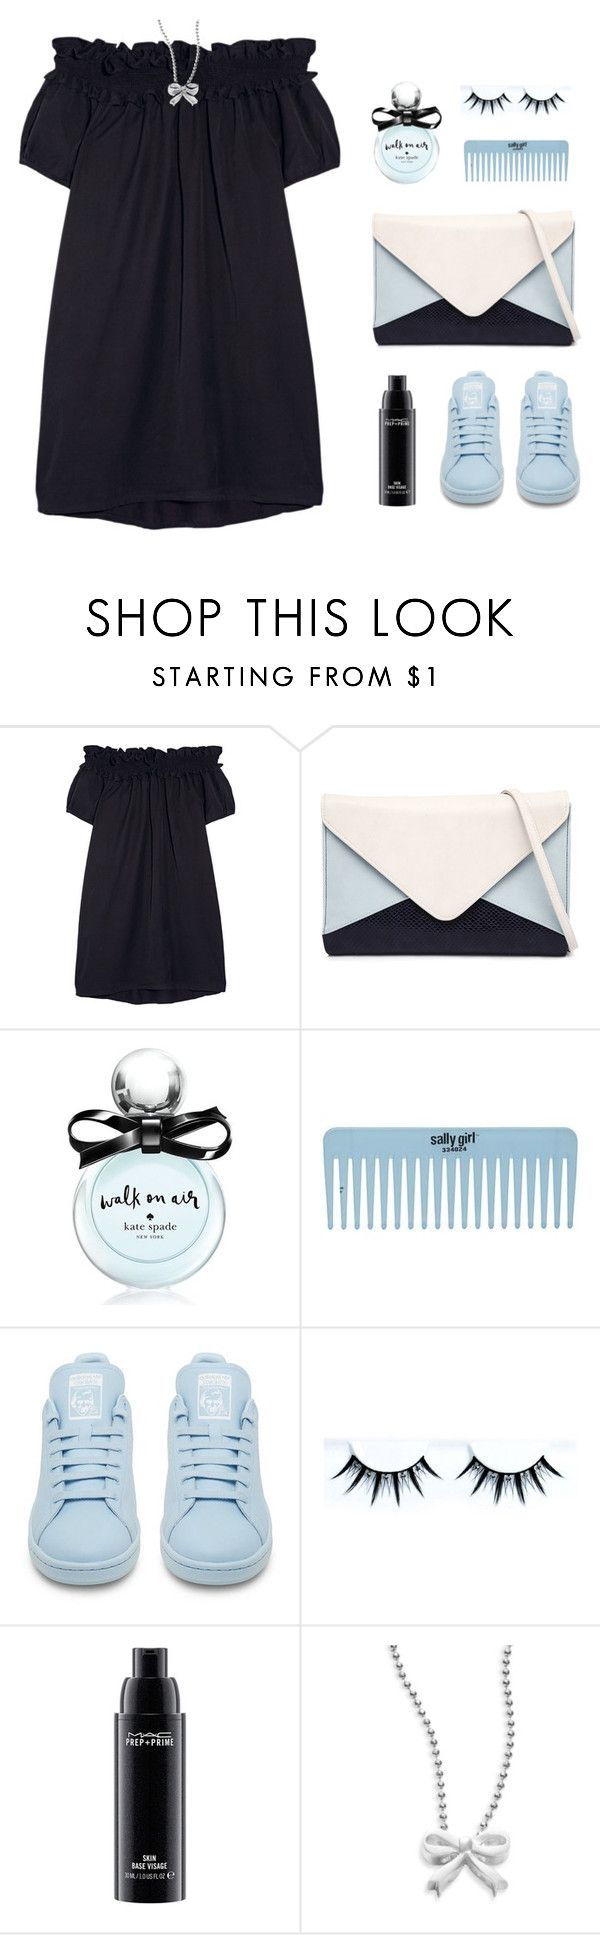 """""""Blind Date"""" by sweetpastelady ❤ liked on Polyvore featuring Clu, Jendi, Kate Spade, adidas, MAC Cosmetics, Alex Woo, women's clothing, women, female and woman"""